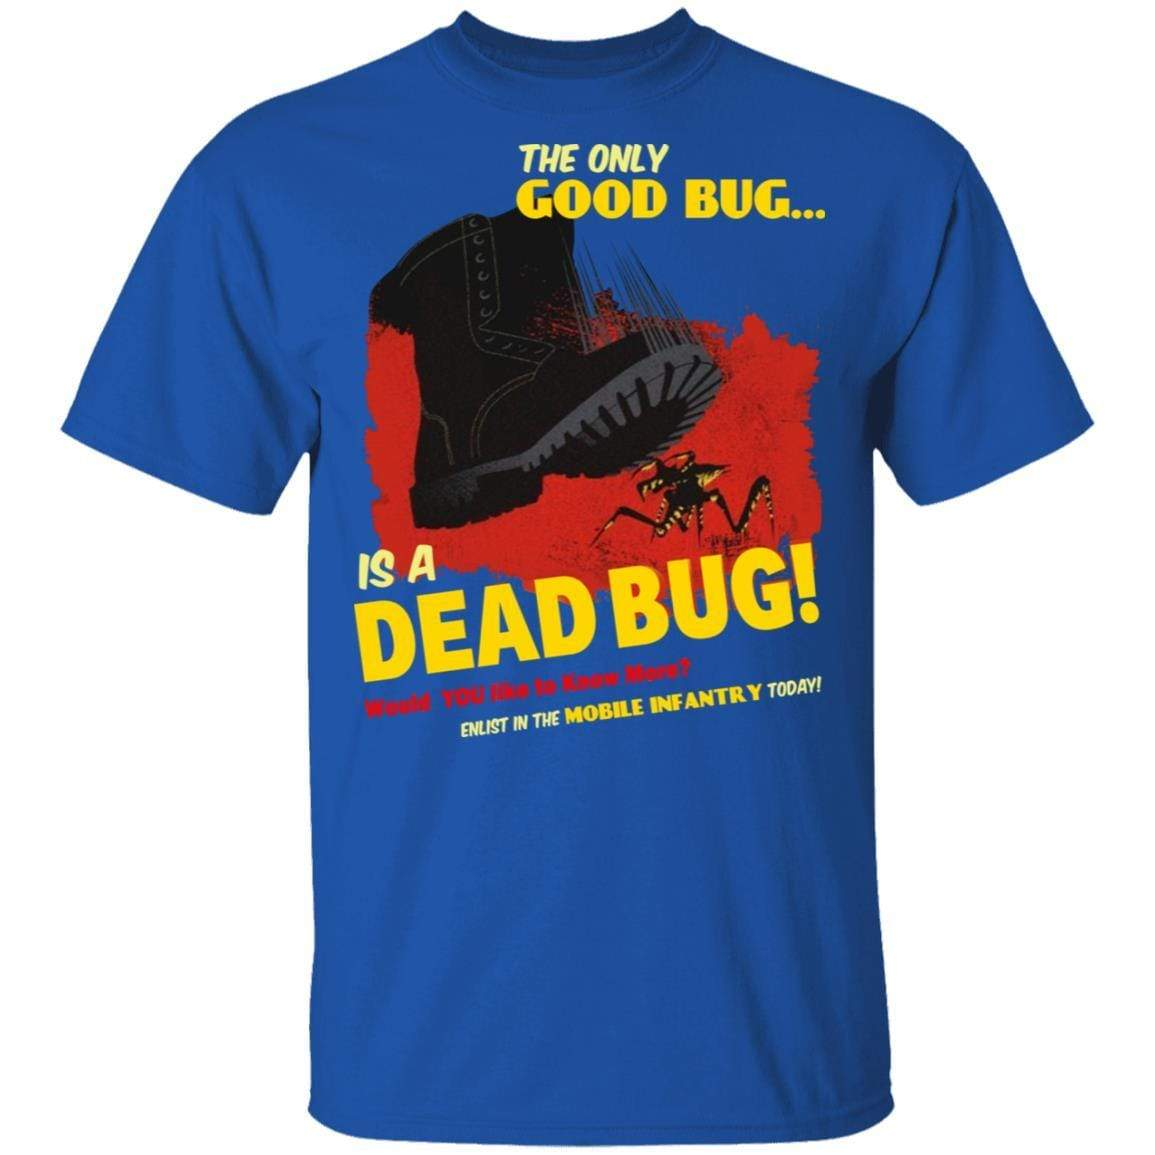 The Only Good Bug Is A Dead Bug Would You Like To Know More Enlist In The Mobile Infantry Today T-Shirts, Hoodies 1049-9971-91821633-48286 - Tee Ript